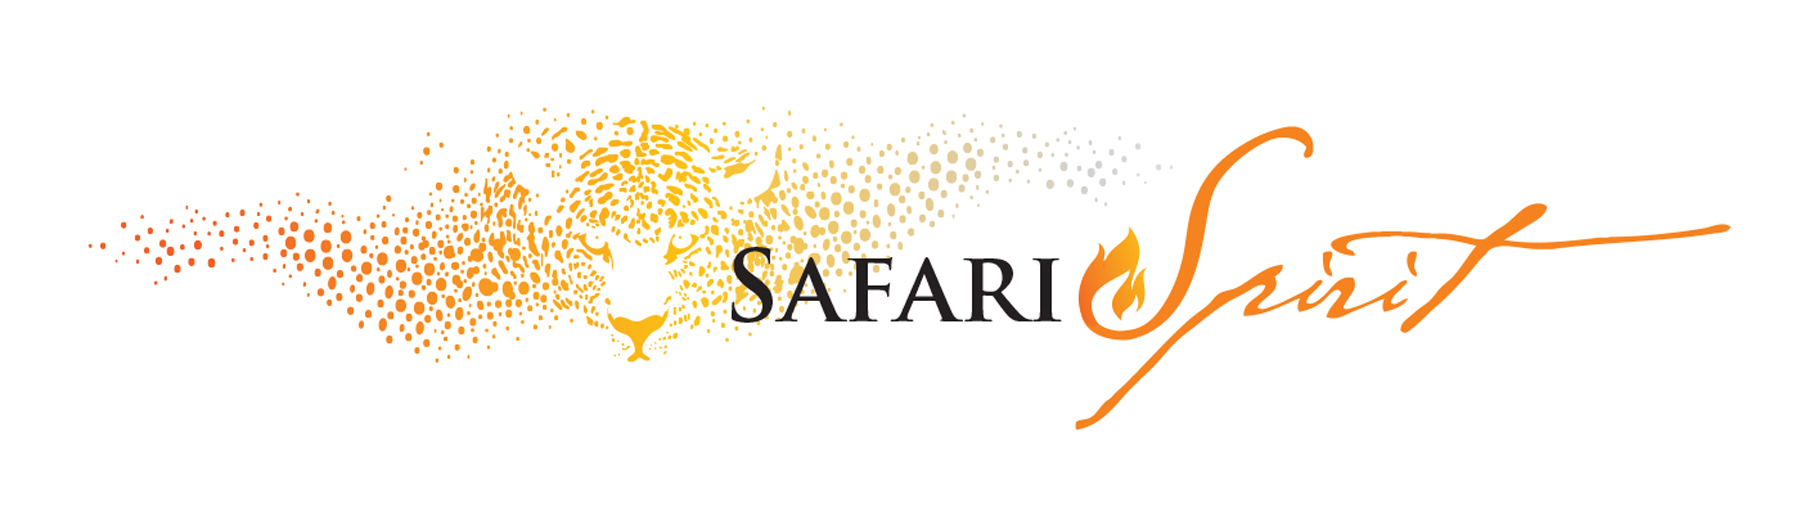 Safari Spirit Logo on white